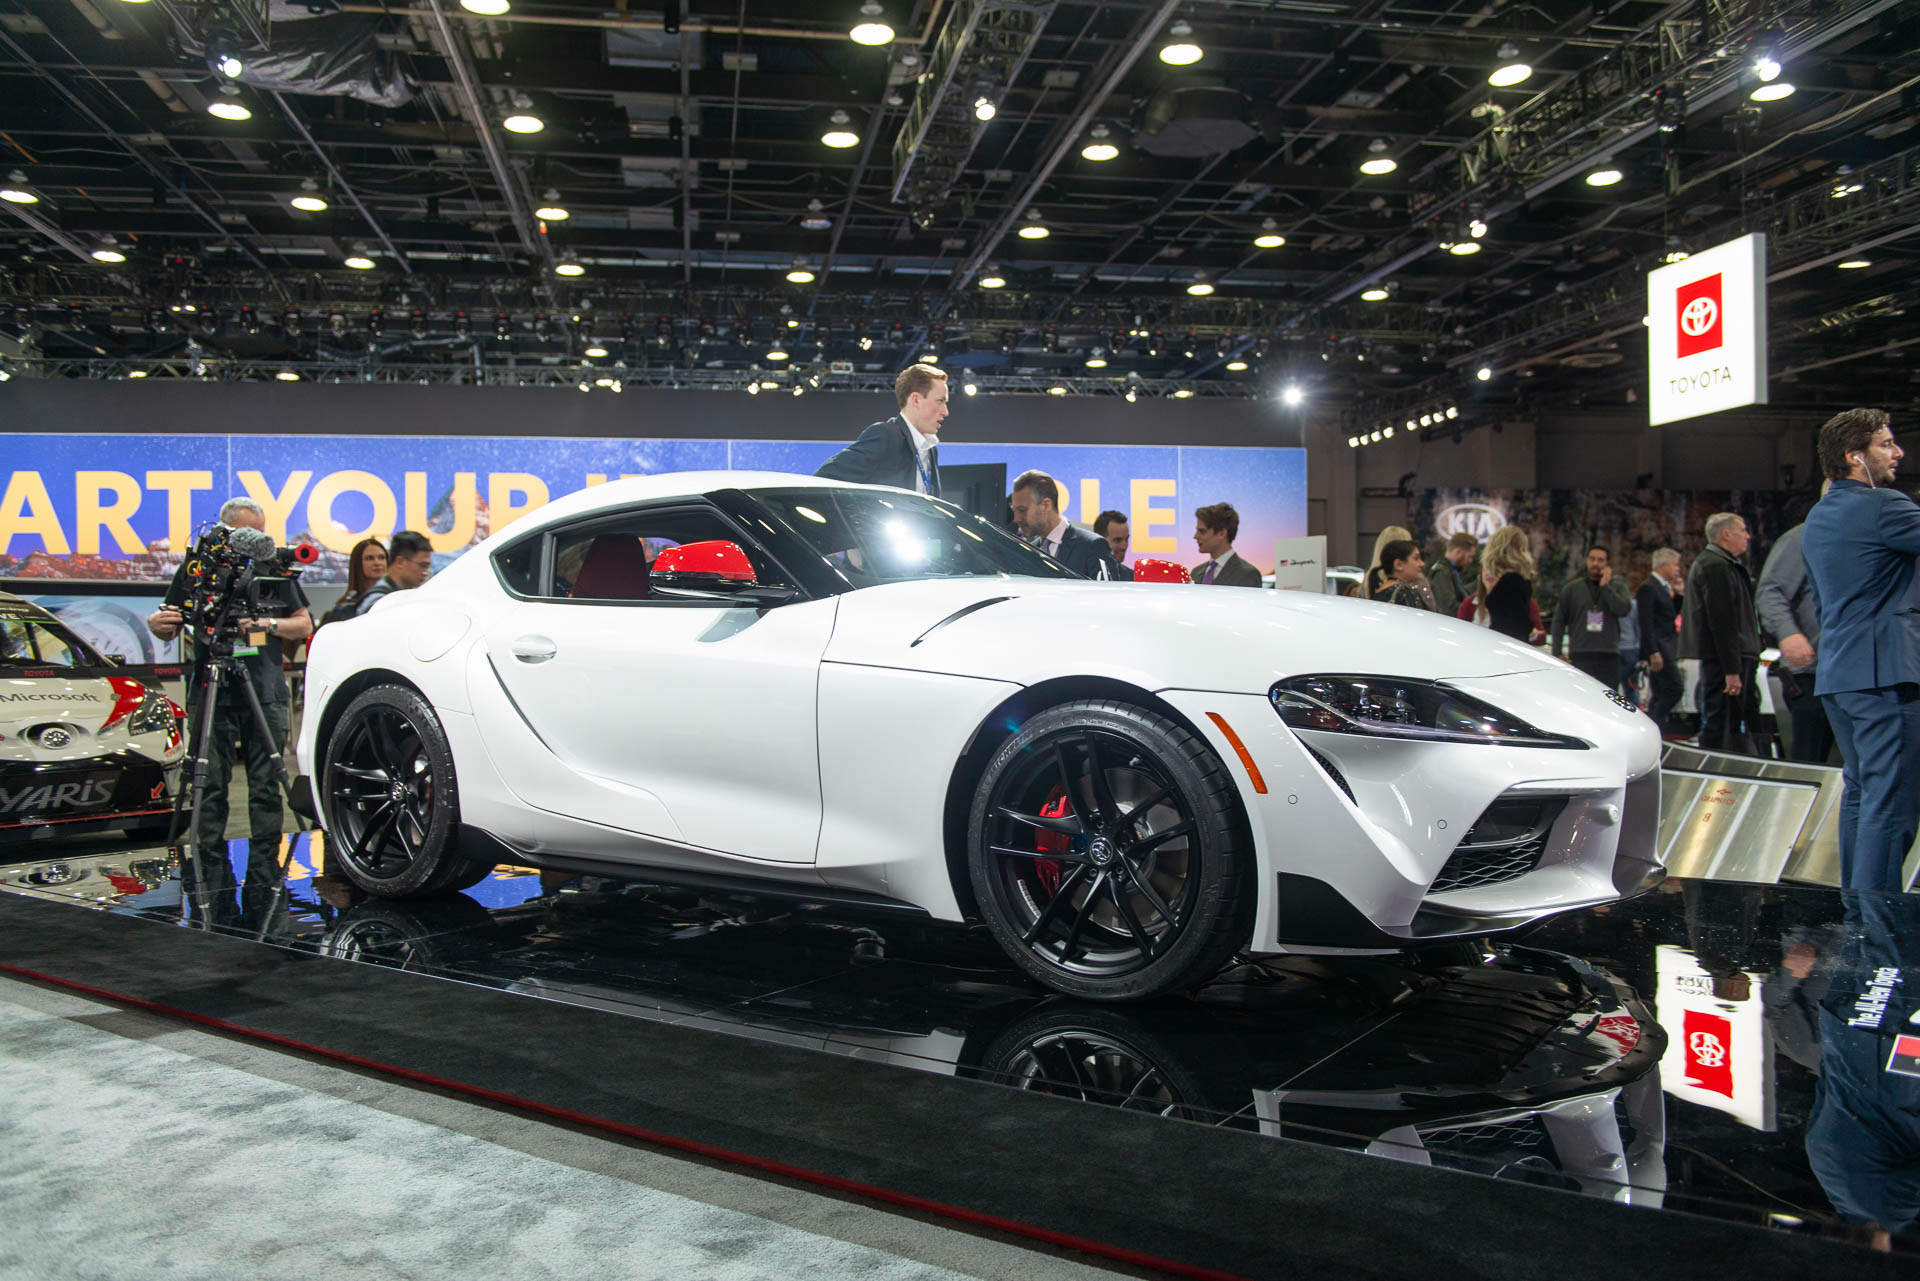 2020 Toyota Supra Legendary Two Seat Sport Coupe Returns With A